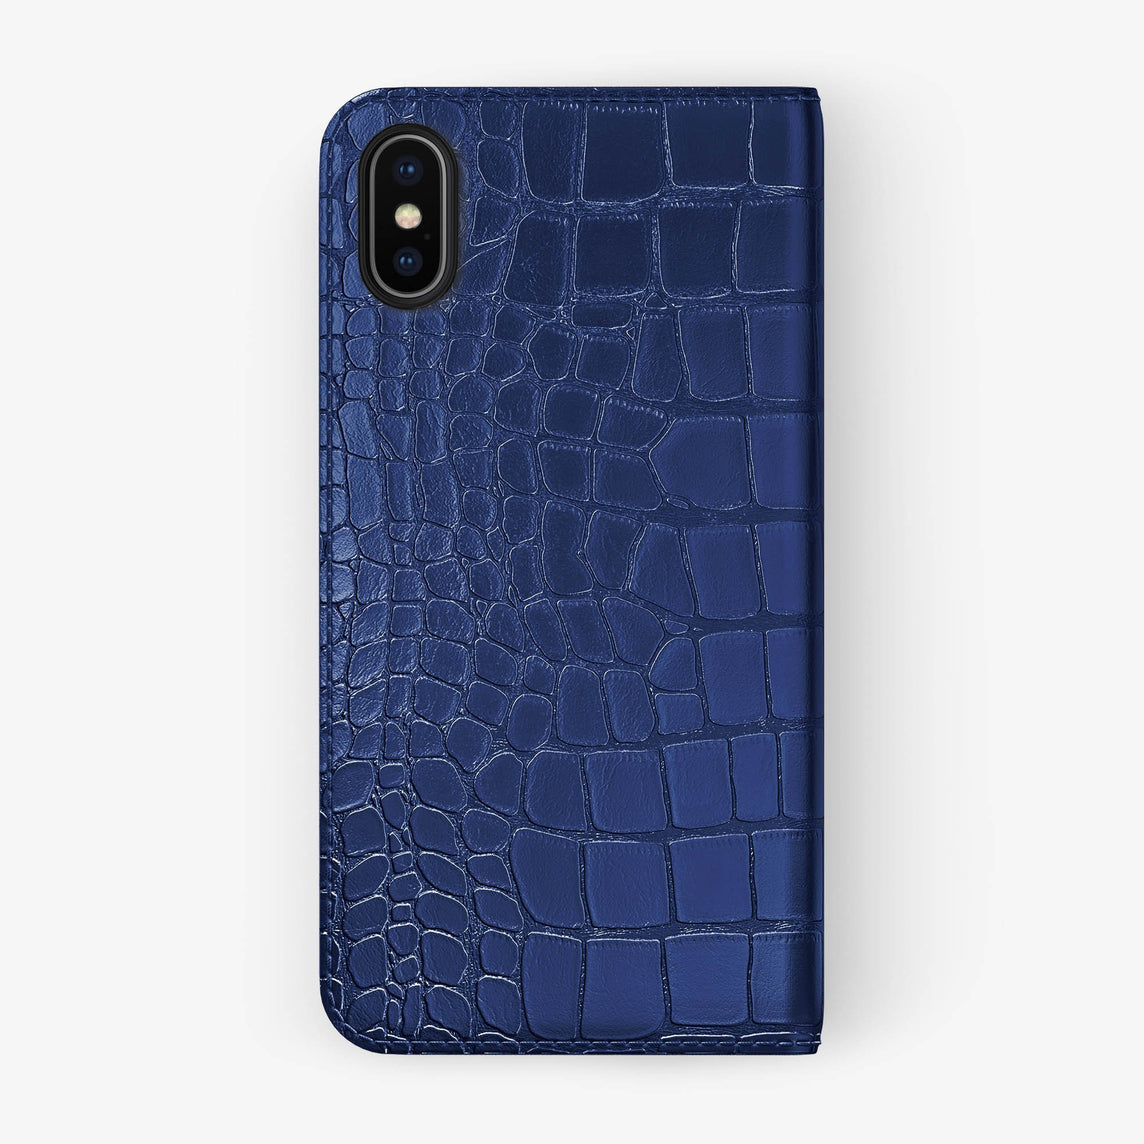 Alligator Folio Case iPhone X/Xs | Navy Blue - Black without-personalization